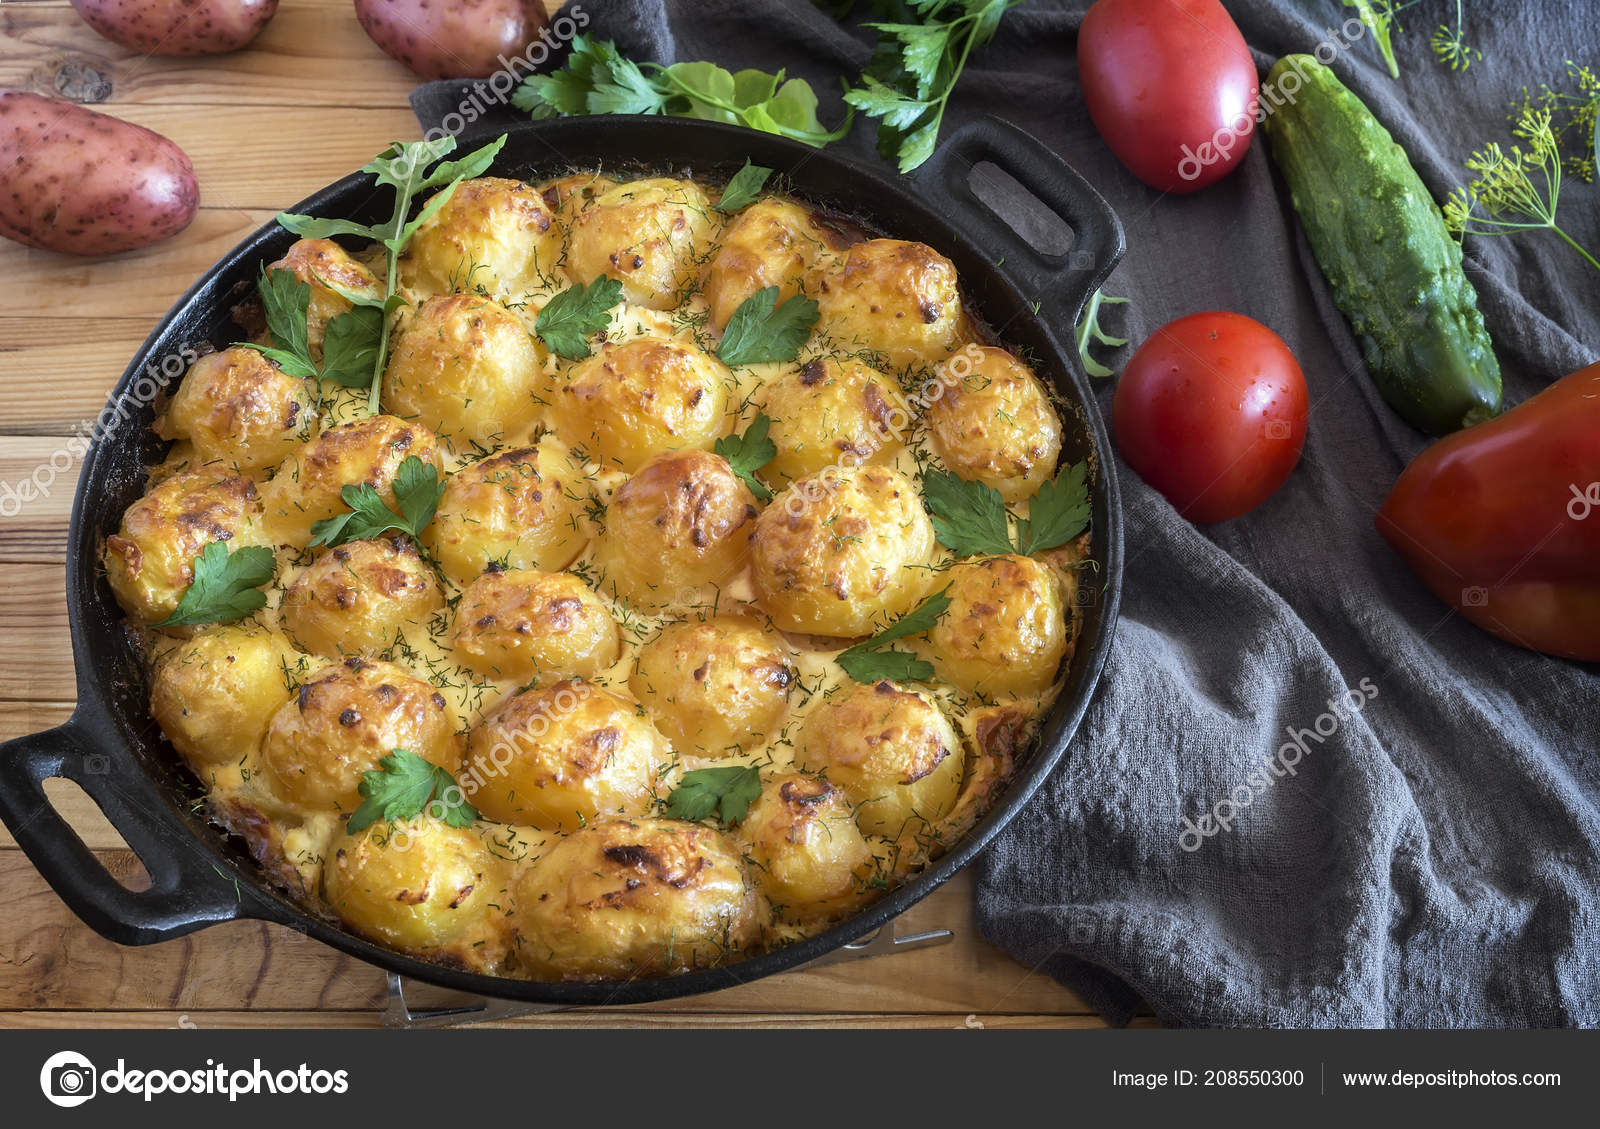 Astonishing Young Potatoes With Cottage Cheese Are Baked In The Oven Interior Design Ideas Gentotryabchikinfo